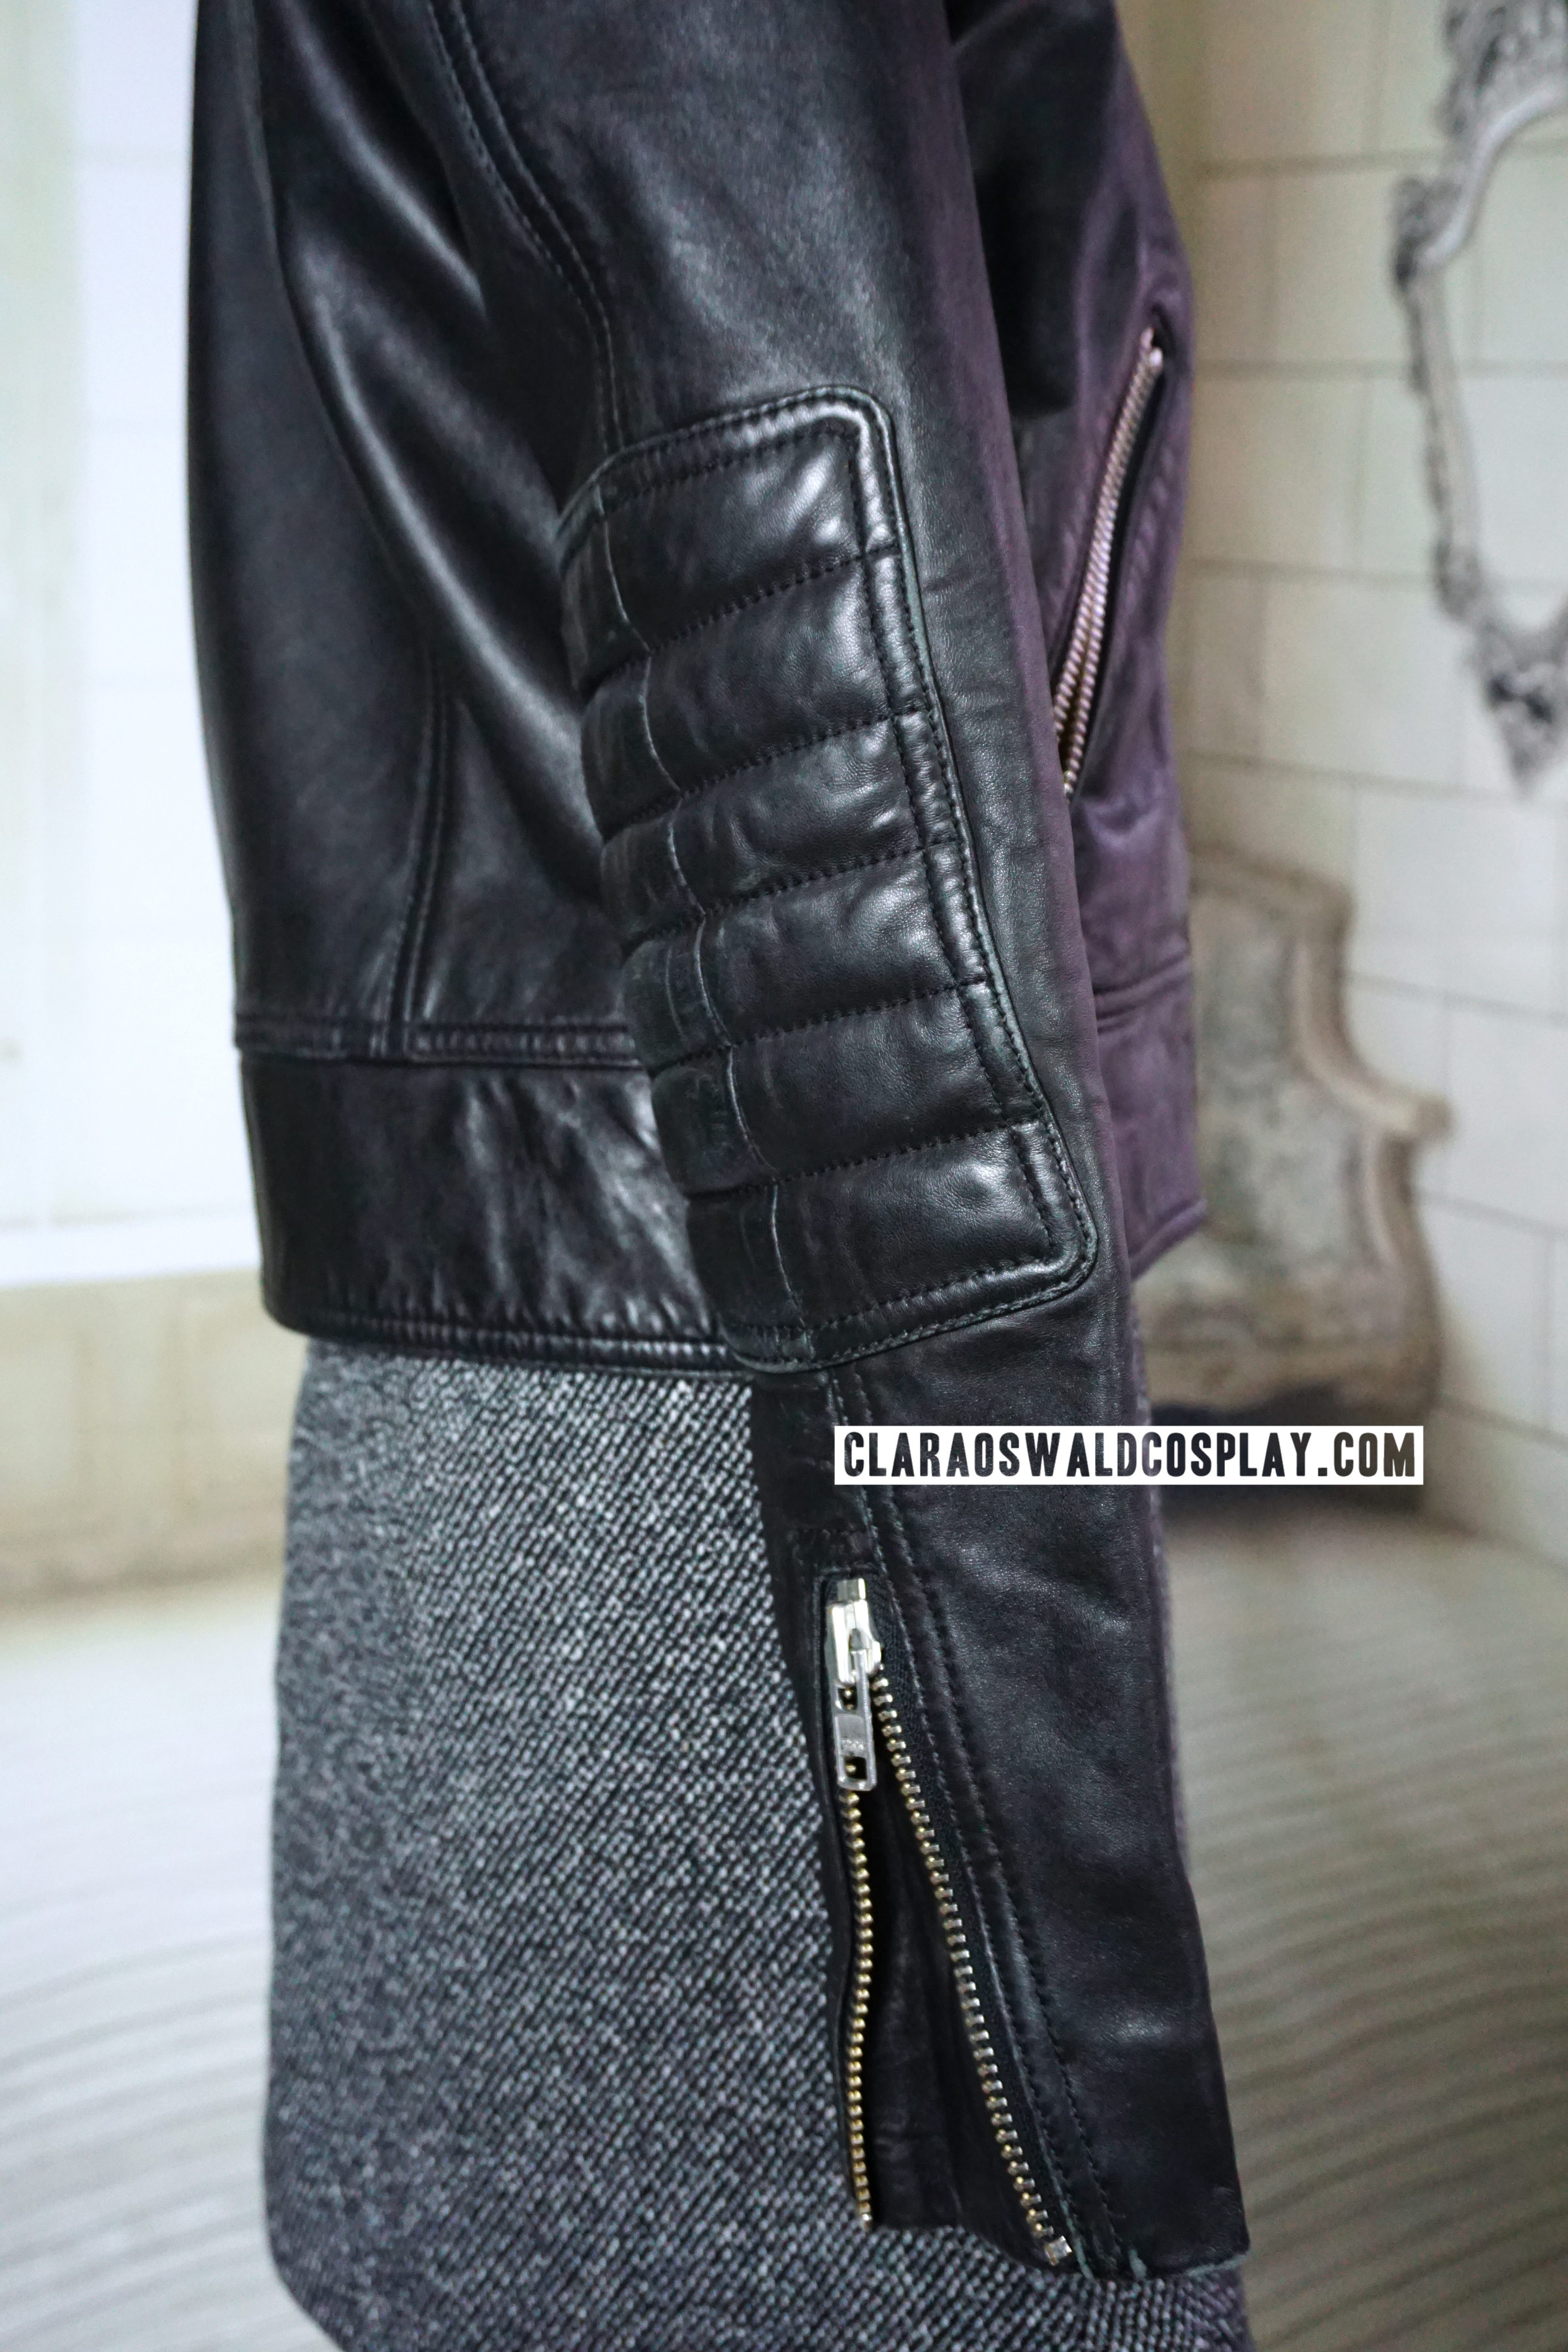 The leather jacket has zips at the sleeves and very soft elbow padding